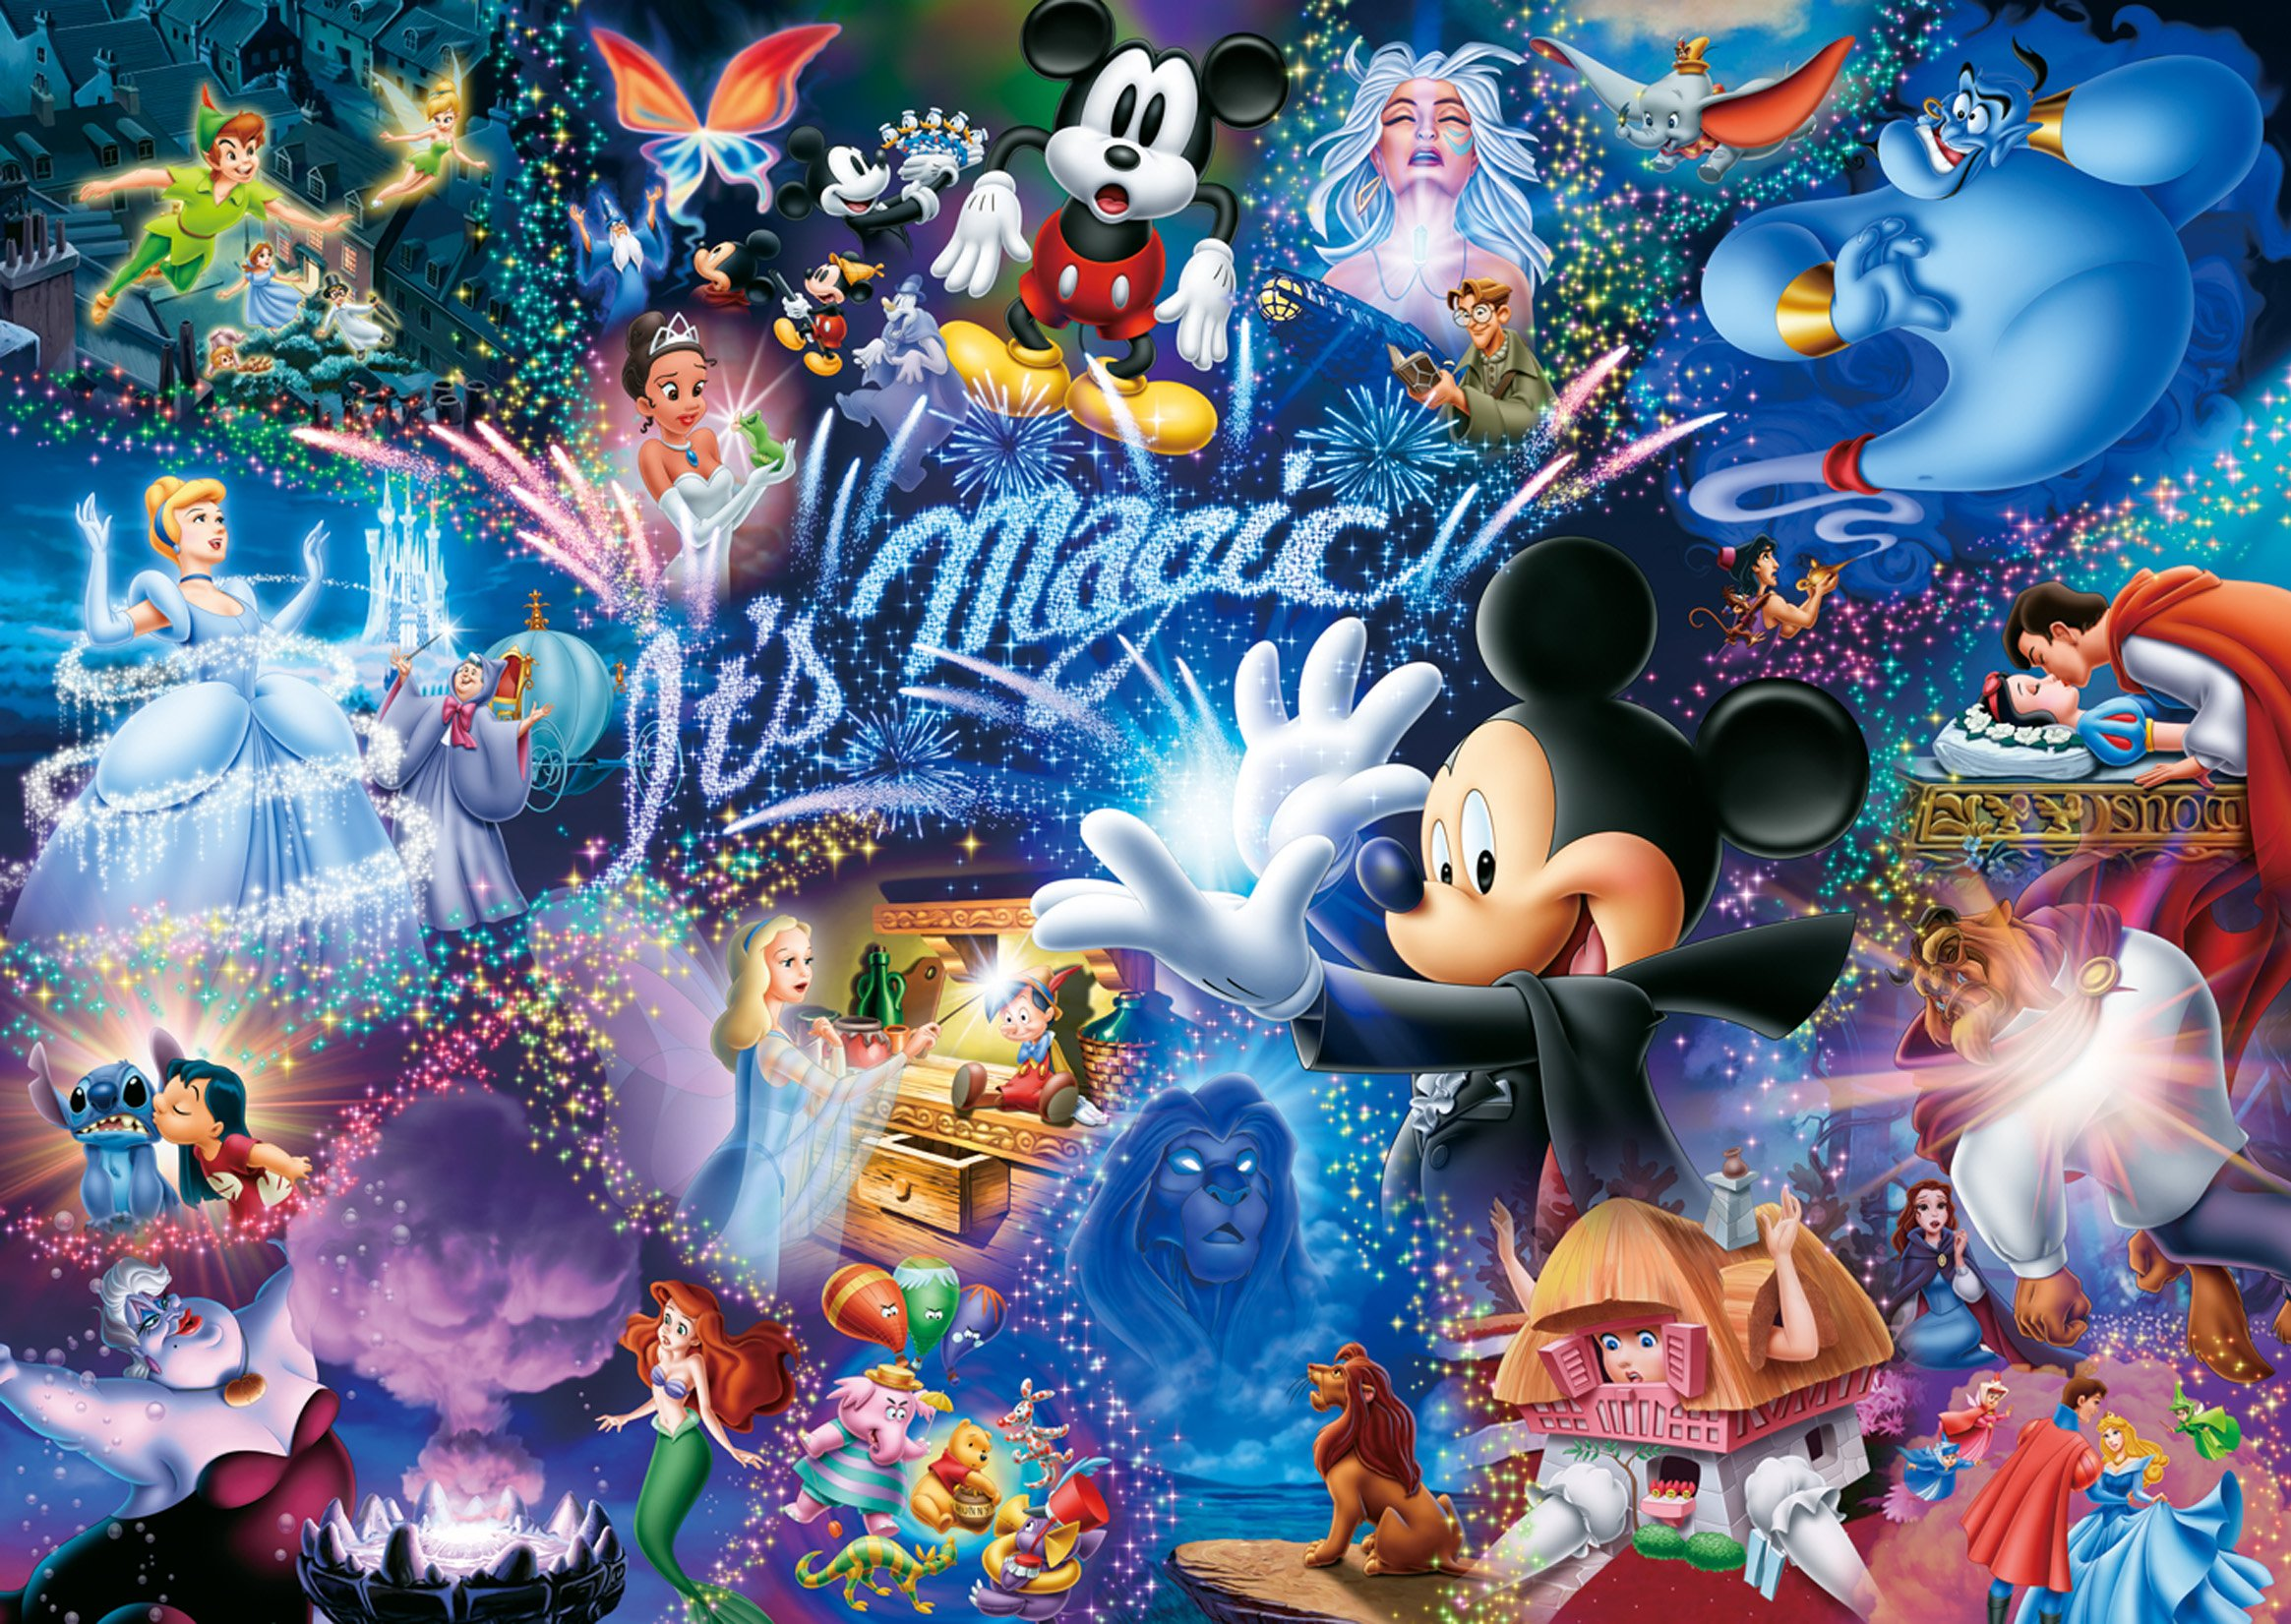 disney stained art jigsaw puzzle jigsaw puzzles for adults. Black Bedroom Furniture Sets. Home Design Ideas